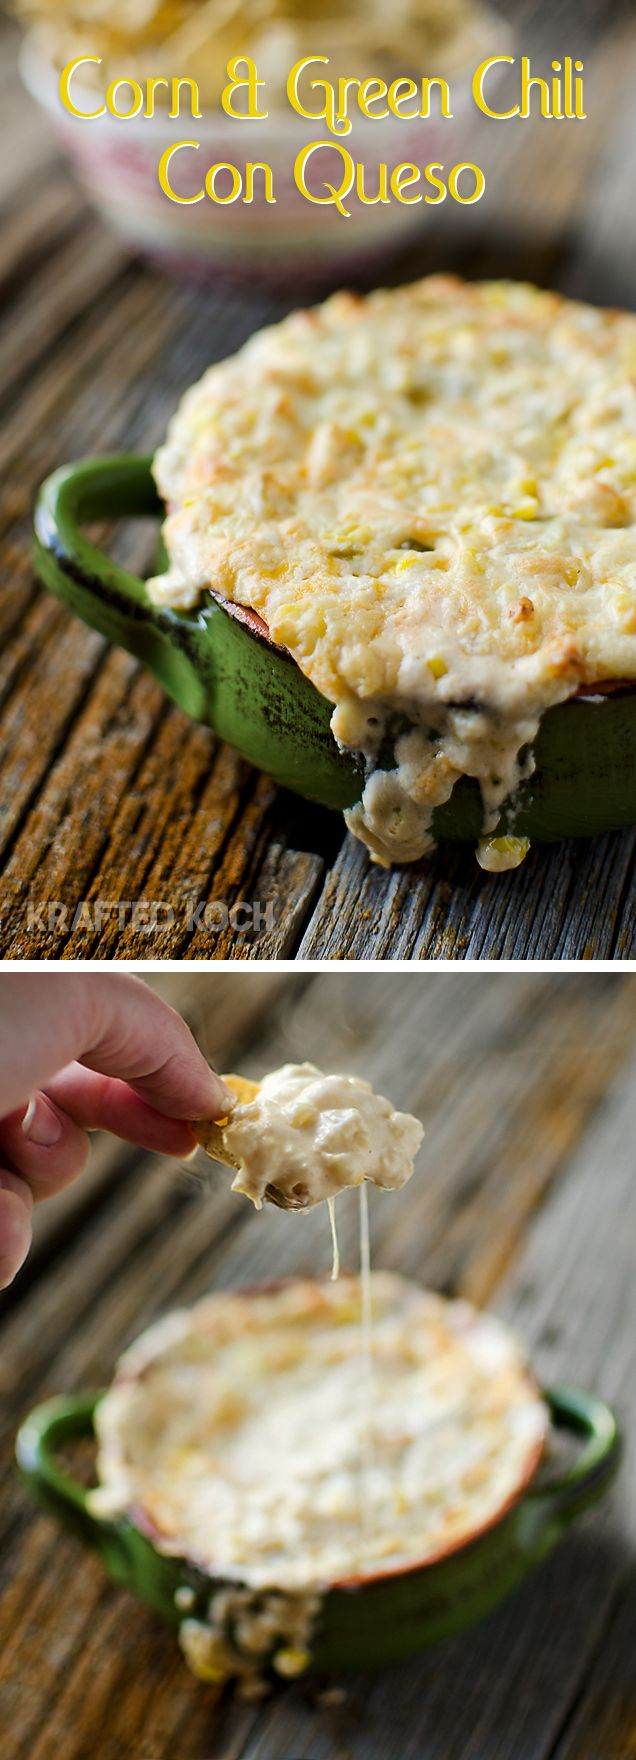 Corn & Green Chili Con Queso Dip from Krafted Koch